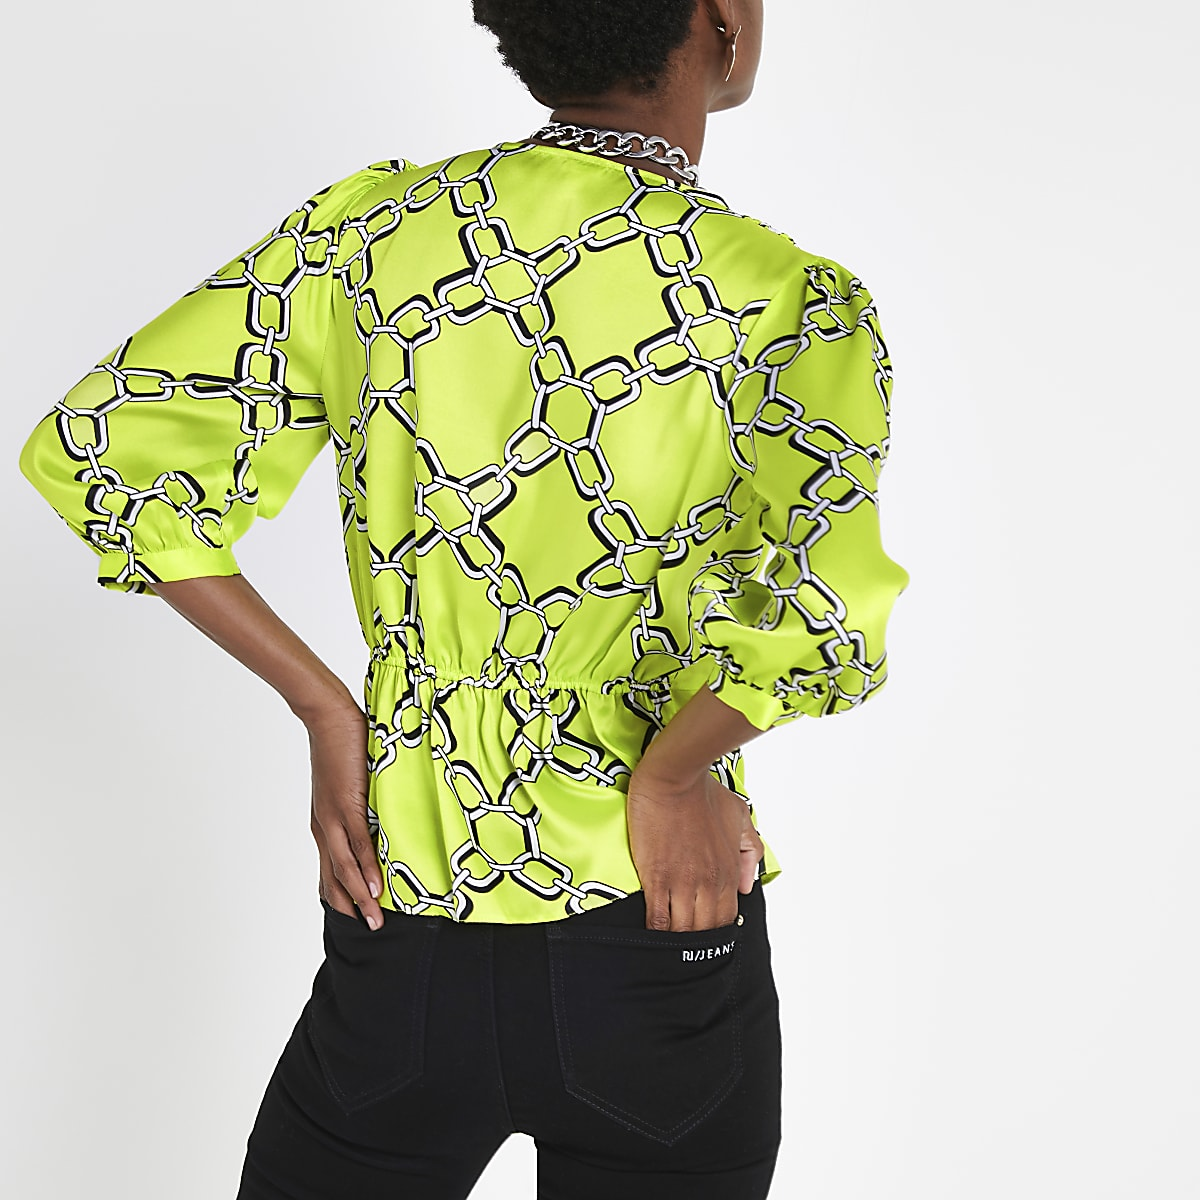 ad7c2bd06603e1 Green chain print double breasted blouse - Blouses - Tops - women